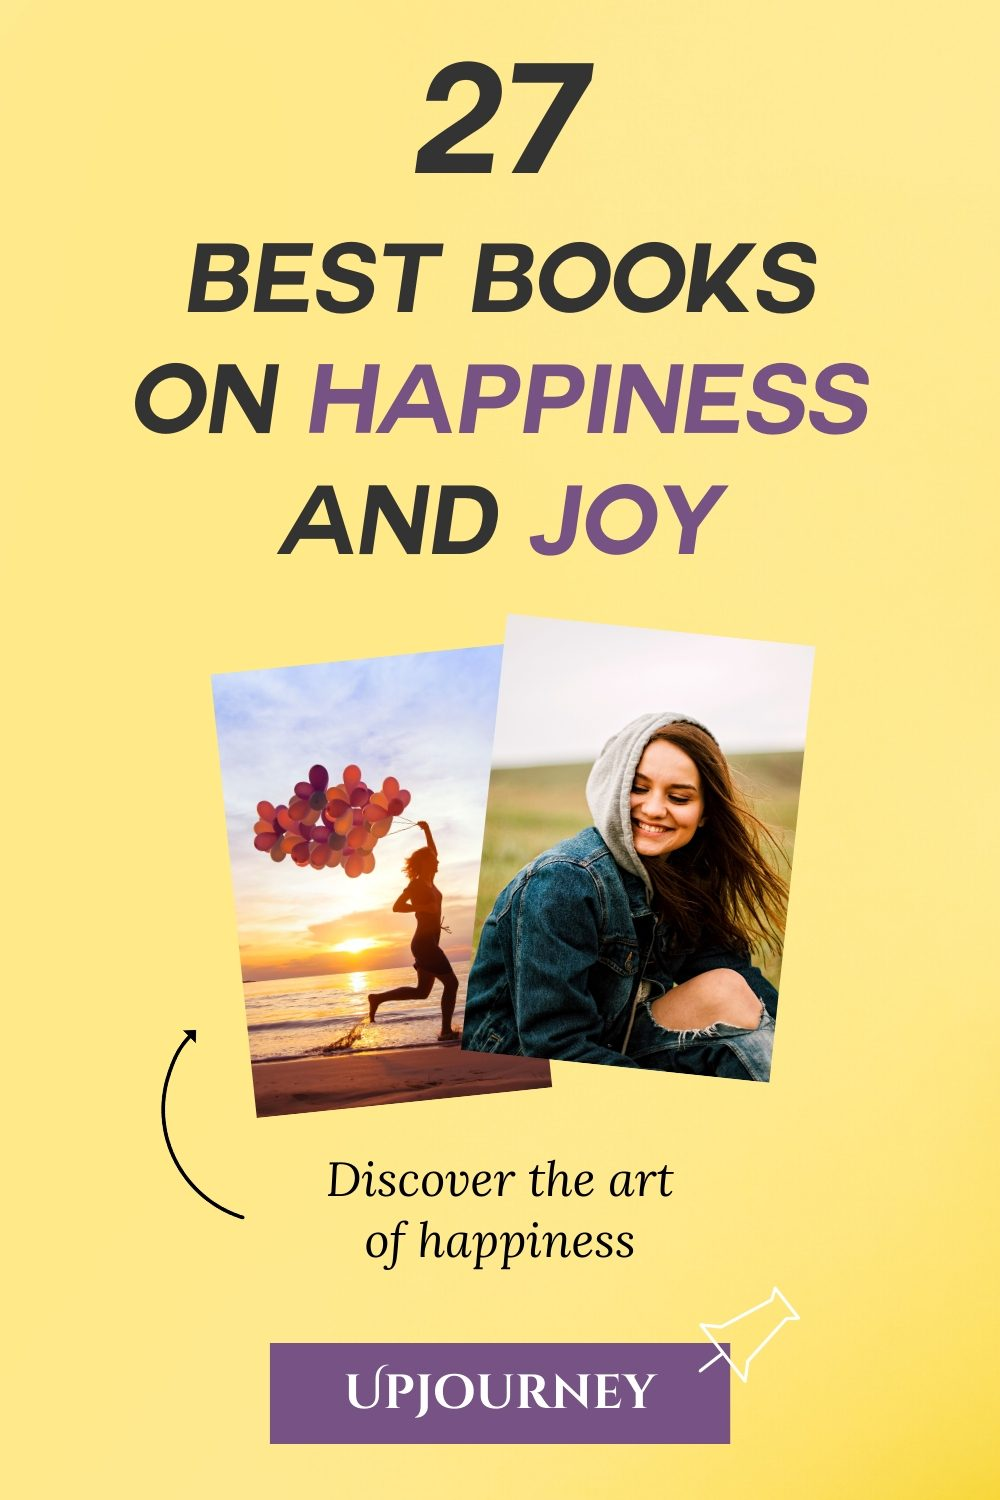 Best Books on Happiness and Joy